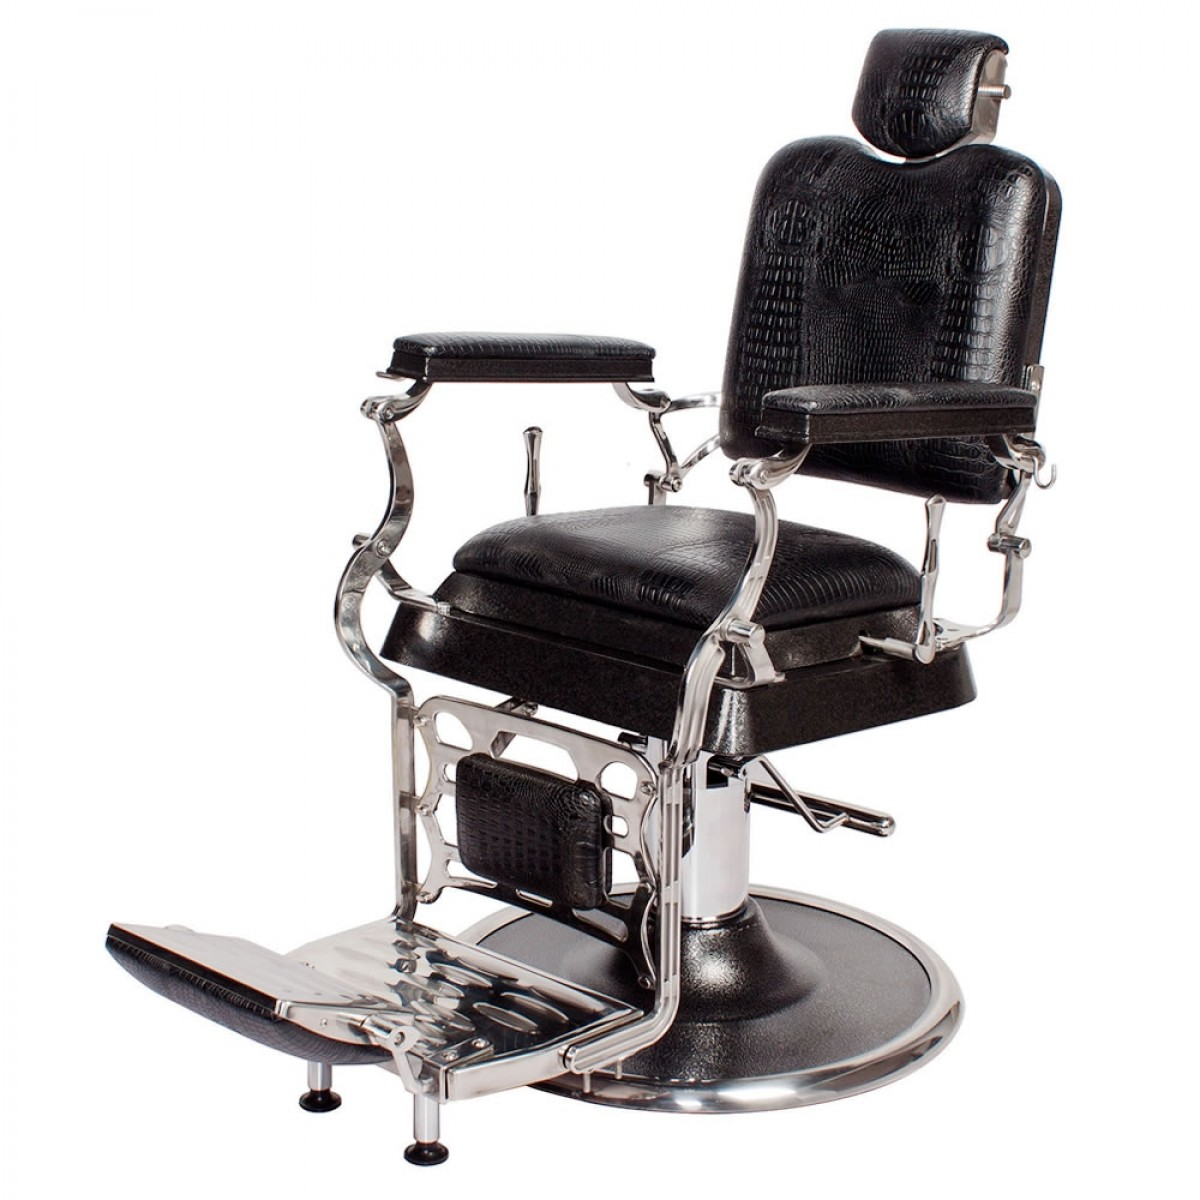 Peachy Emperor Barber Chair In Black Crocodile Andrewgaddart Wooden Chair Designs For Living Room Andrewgaddartcom